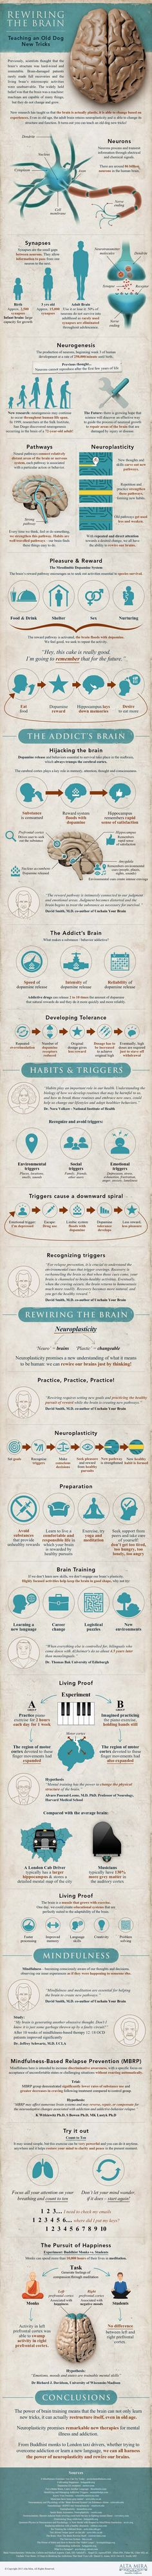 An Infographic To Tell You How Your Brain Works And How To Train It | This is a great infographic about how to break bad habits, create good habits, and even control our emotions -- Rewiring The Brain [Neuroscience News: http://futuristicnews.com/tag/brain/ Neuroscience Books: http://futuristicshop.com/category/neuroscience-books-neurotechnology-books/]